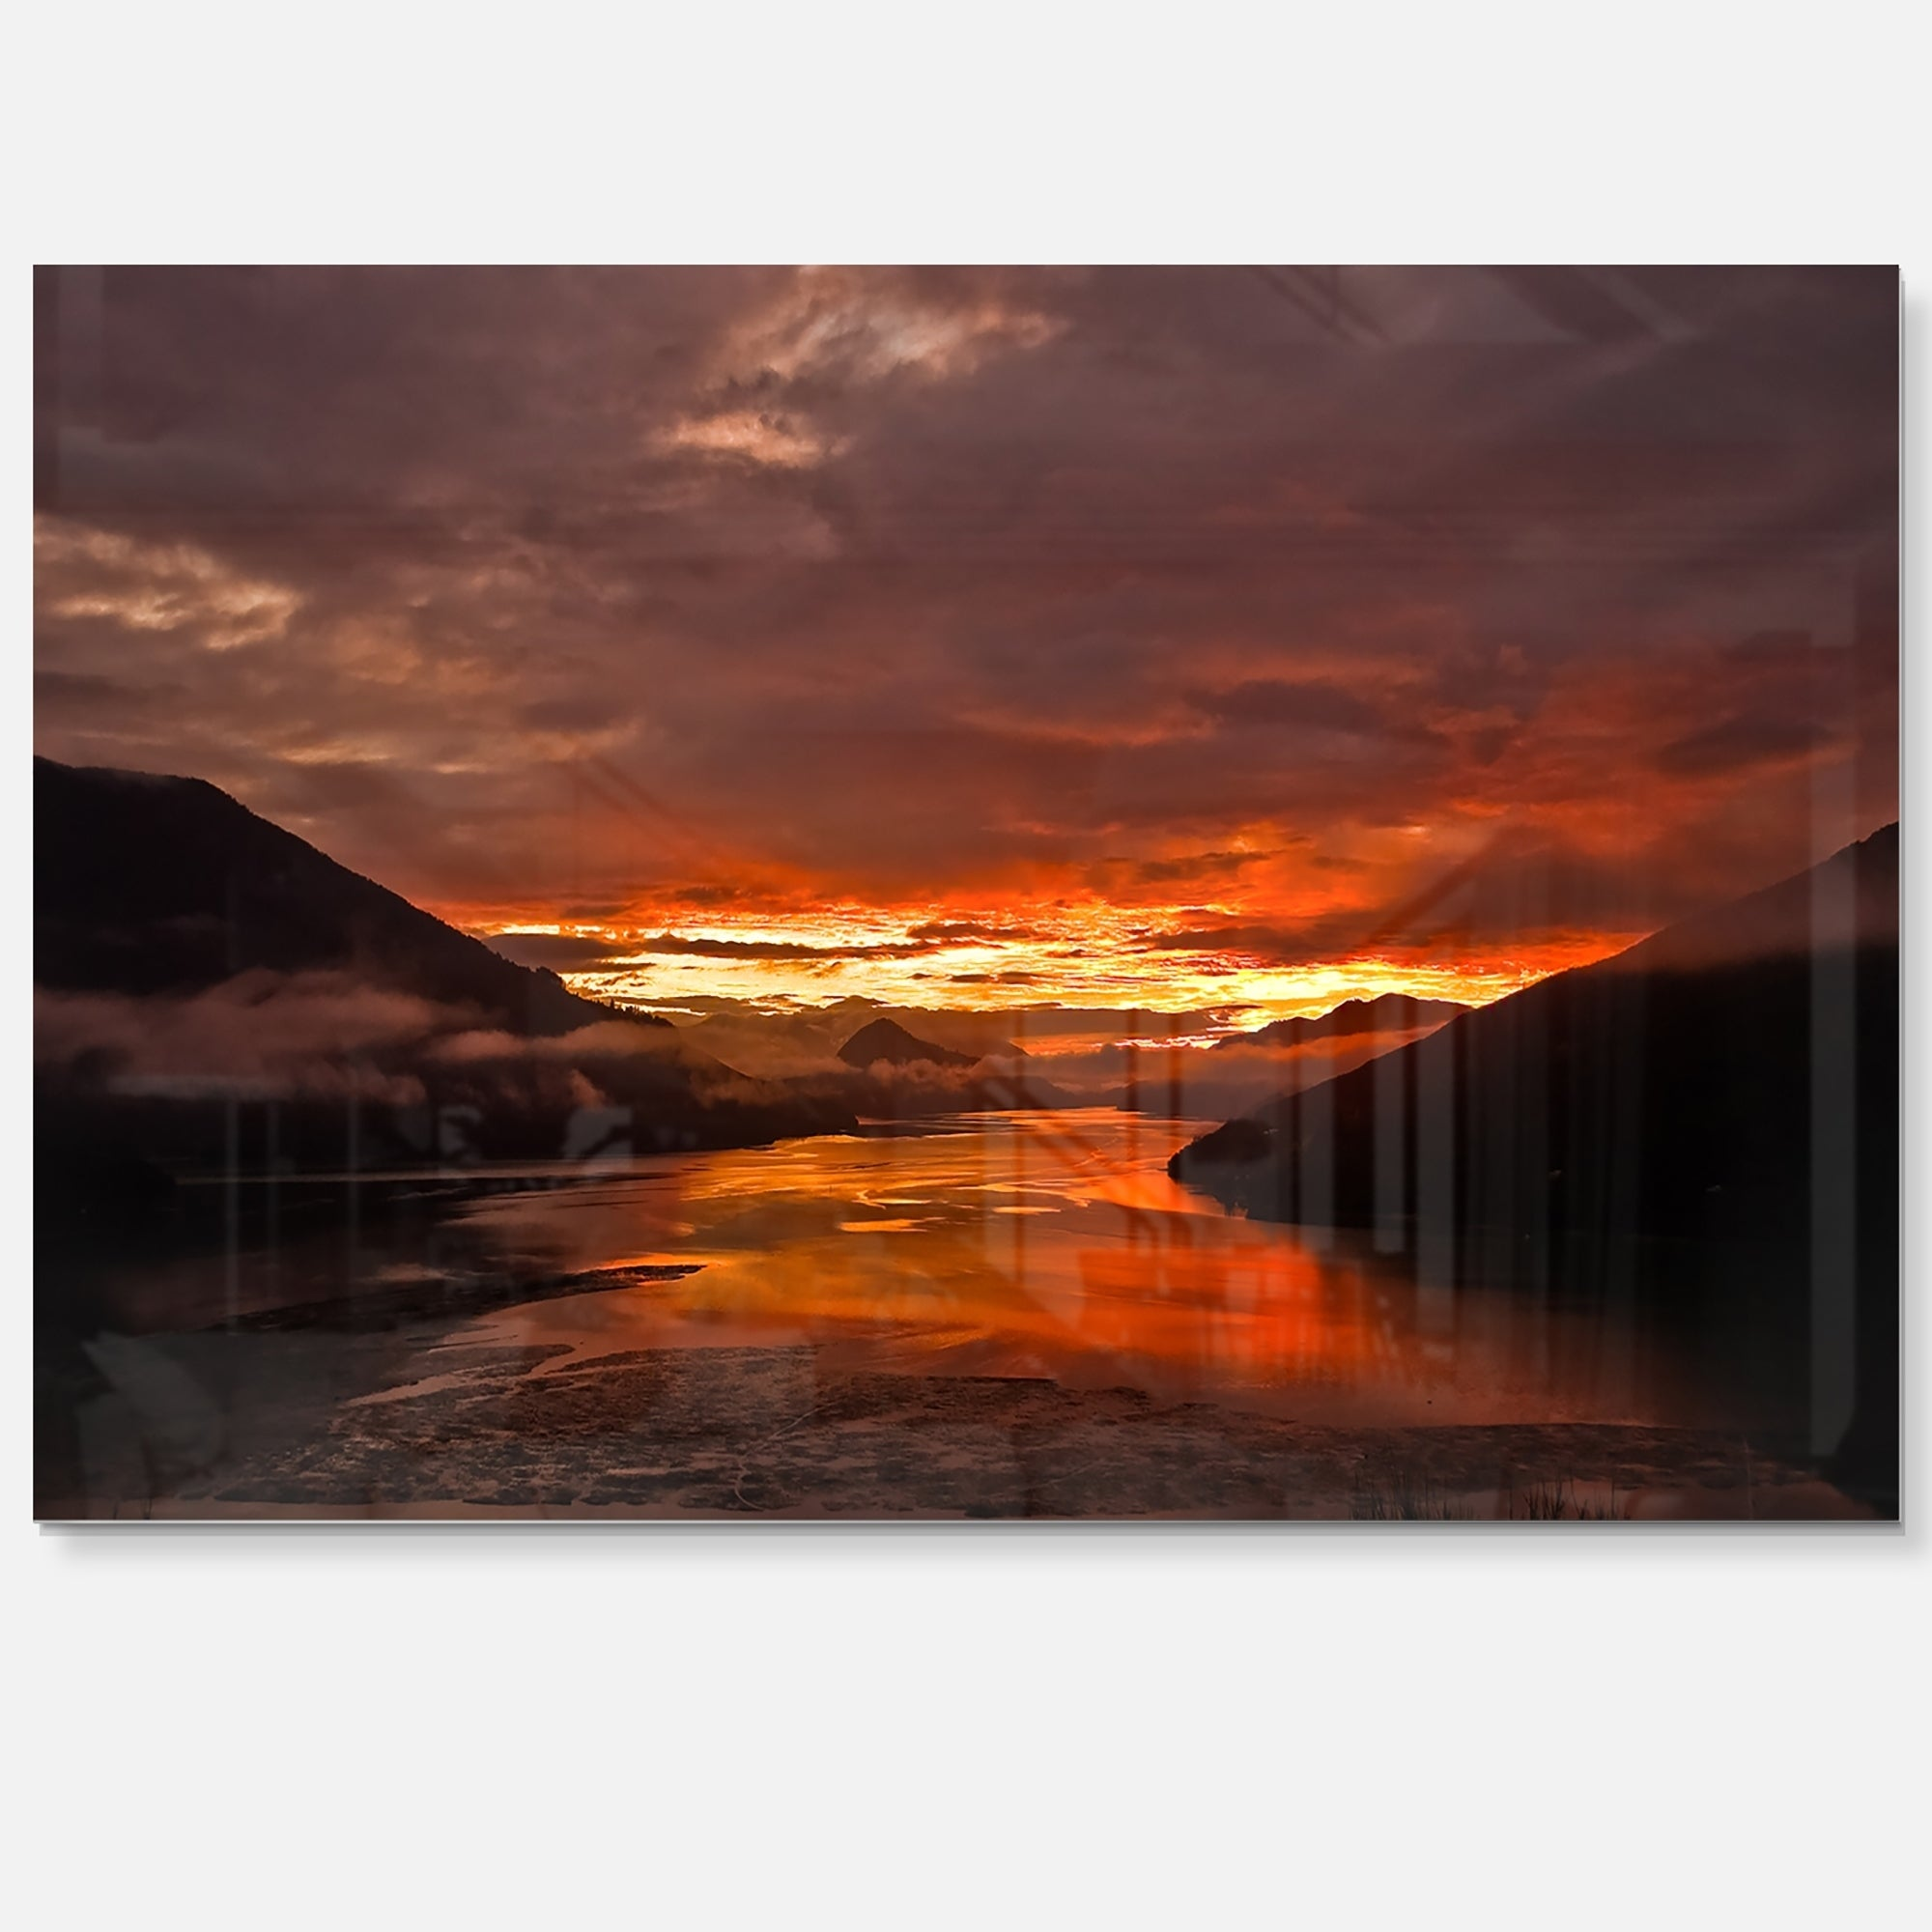 Sunrise In Cloudy Day New Zealand Landscape Photo Glossy Metal Wall Art On Sale Overstock 12780490